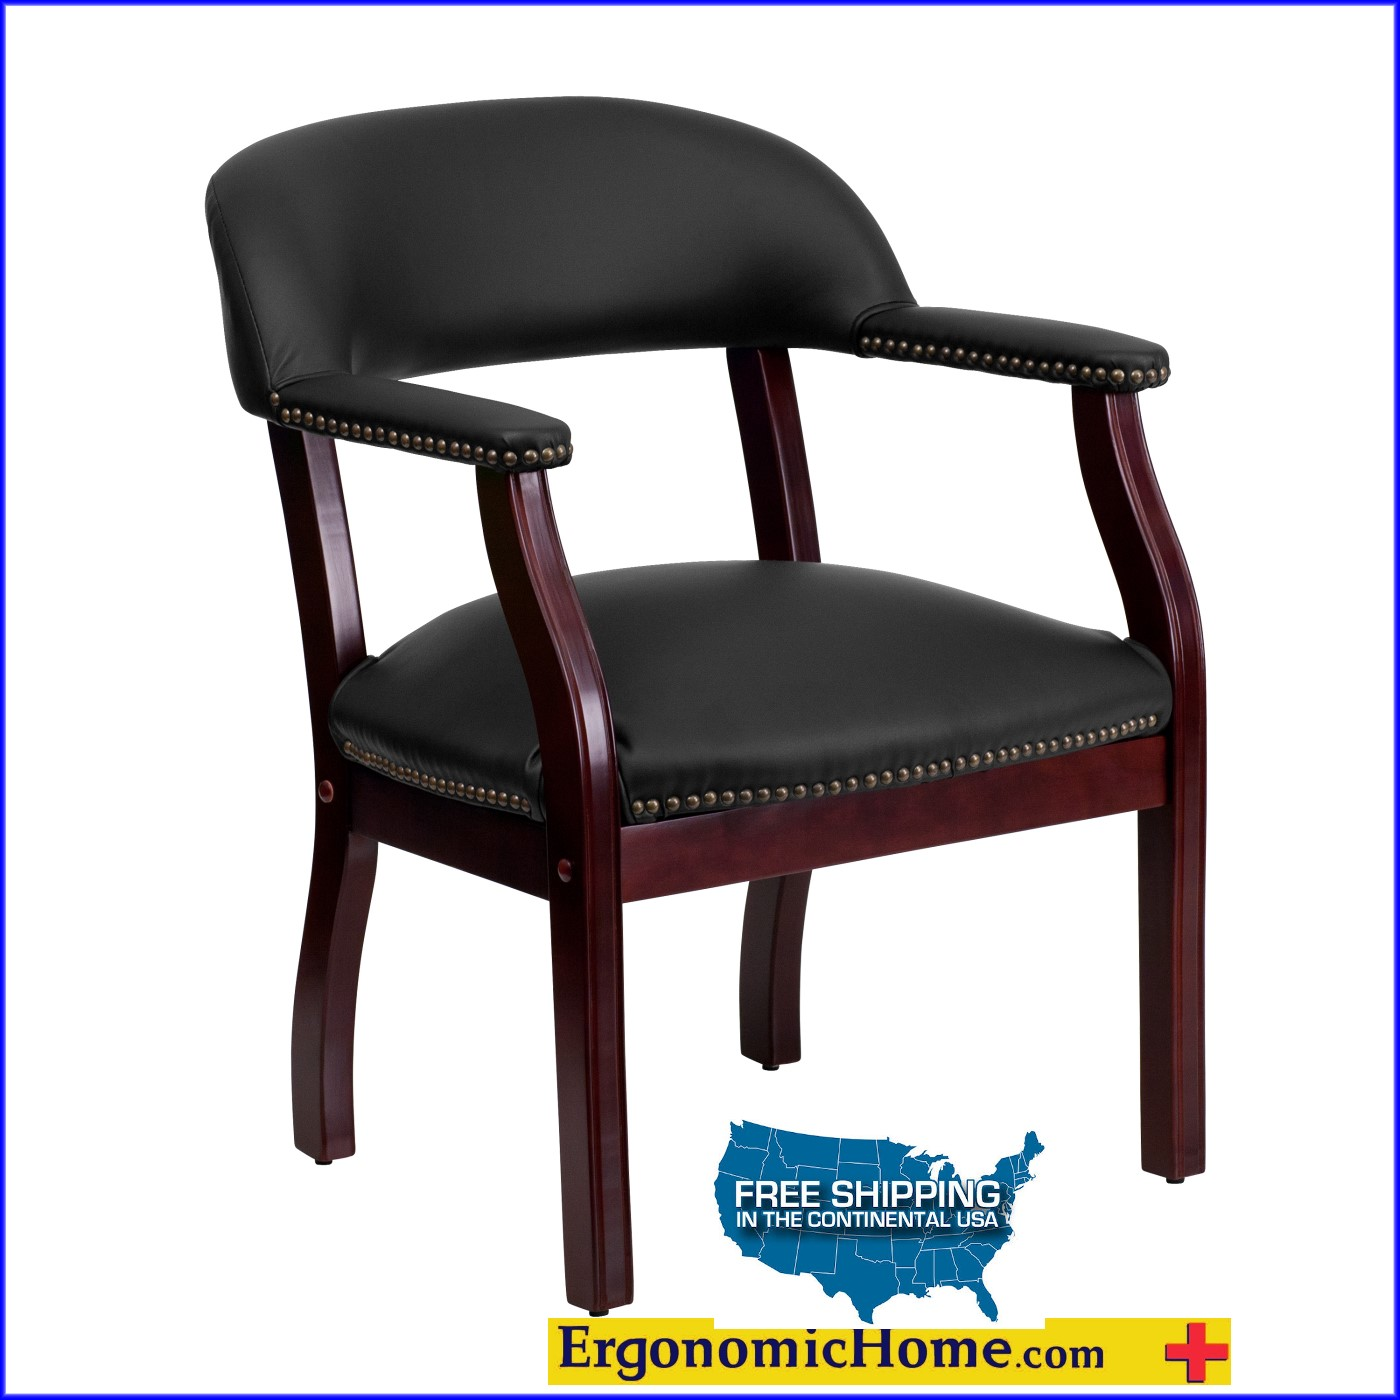 <font color=#c60>Save 50% w/Free Shipping!</font> Ergonomic Home Black Vinyl Luxurious Conference Chair B-Z105-BLACK-GG <font color=#c60>Read More ... </font>